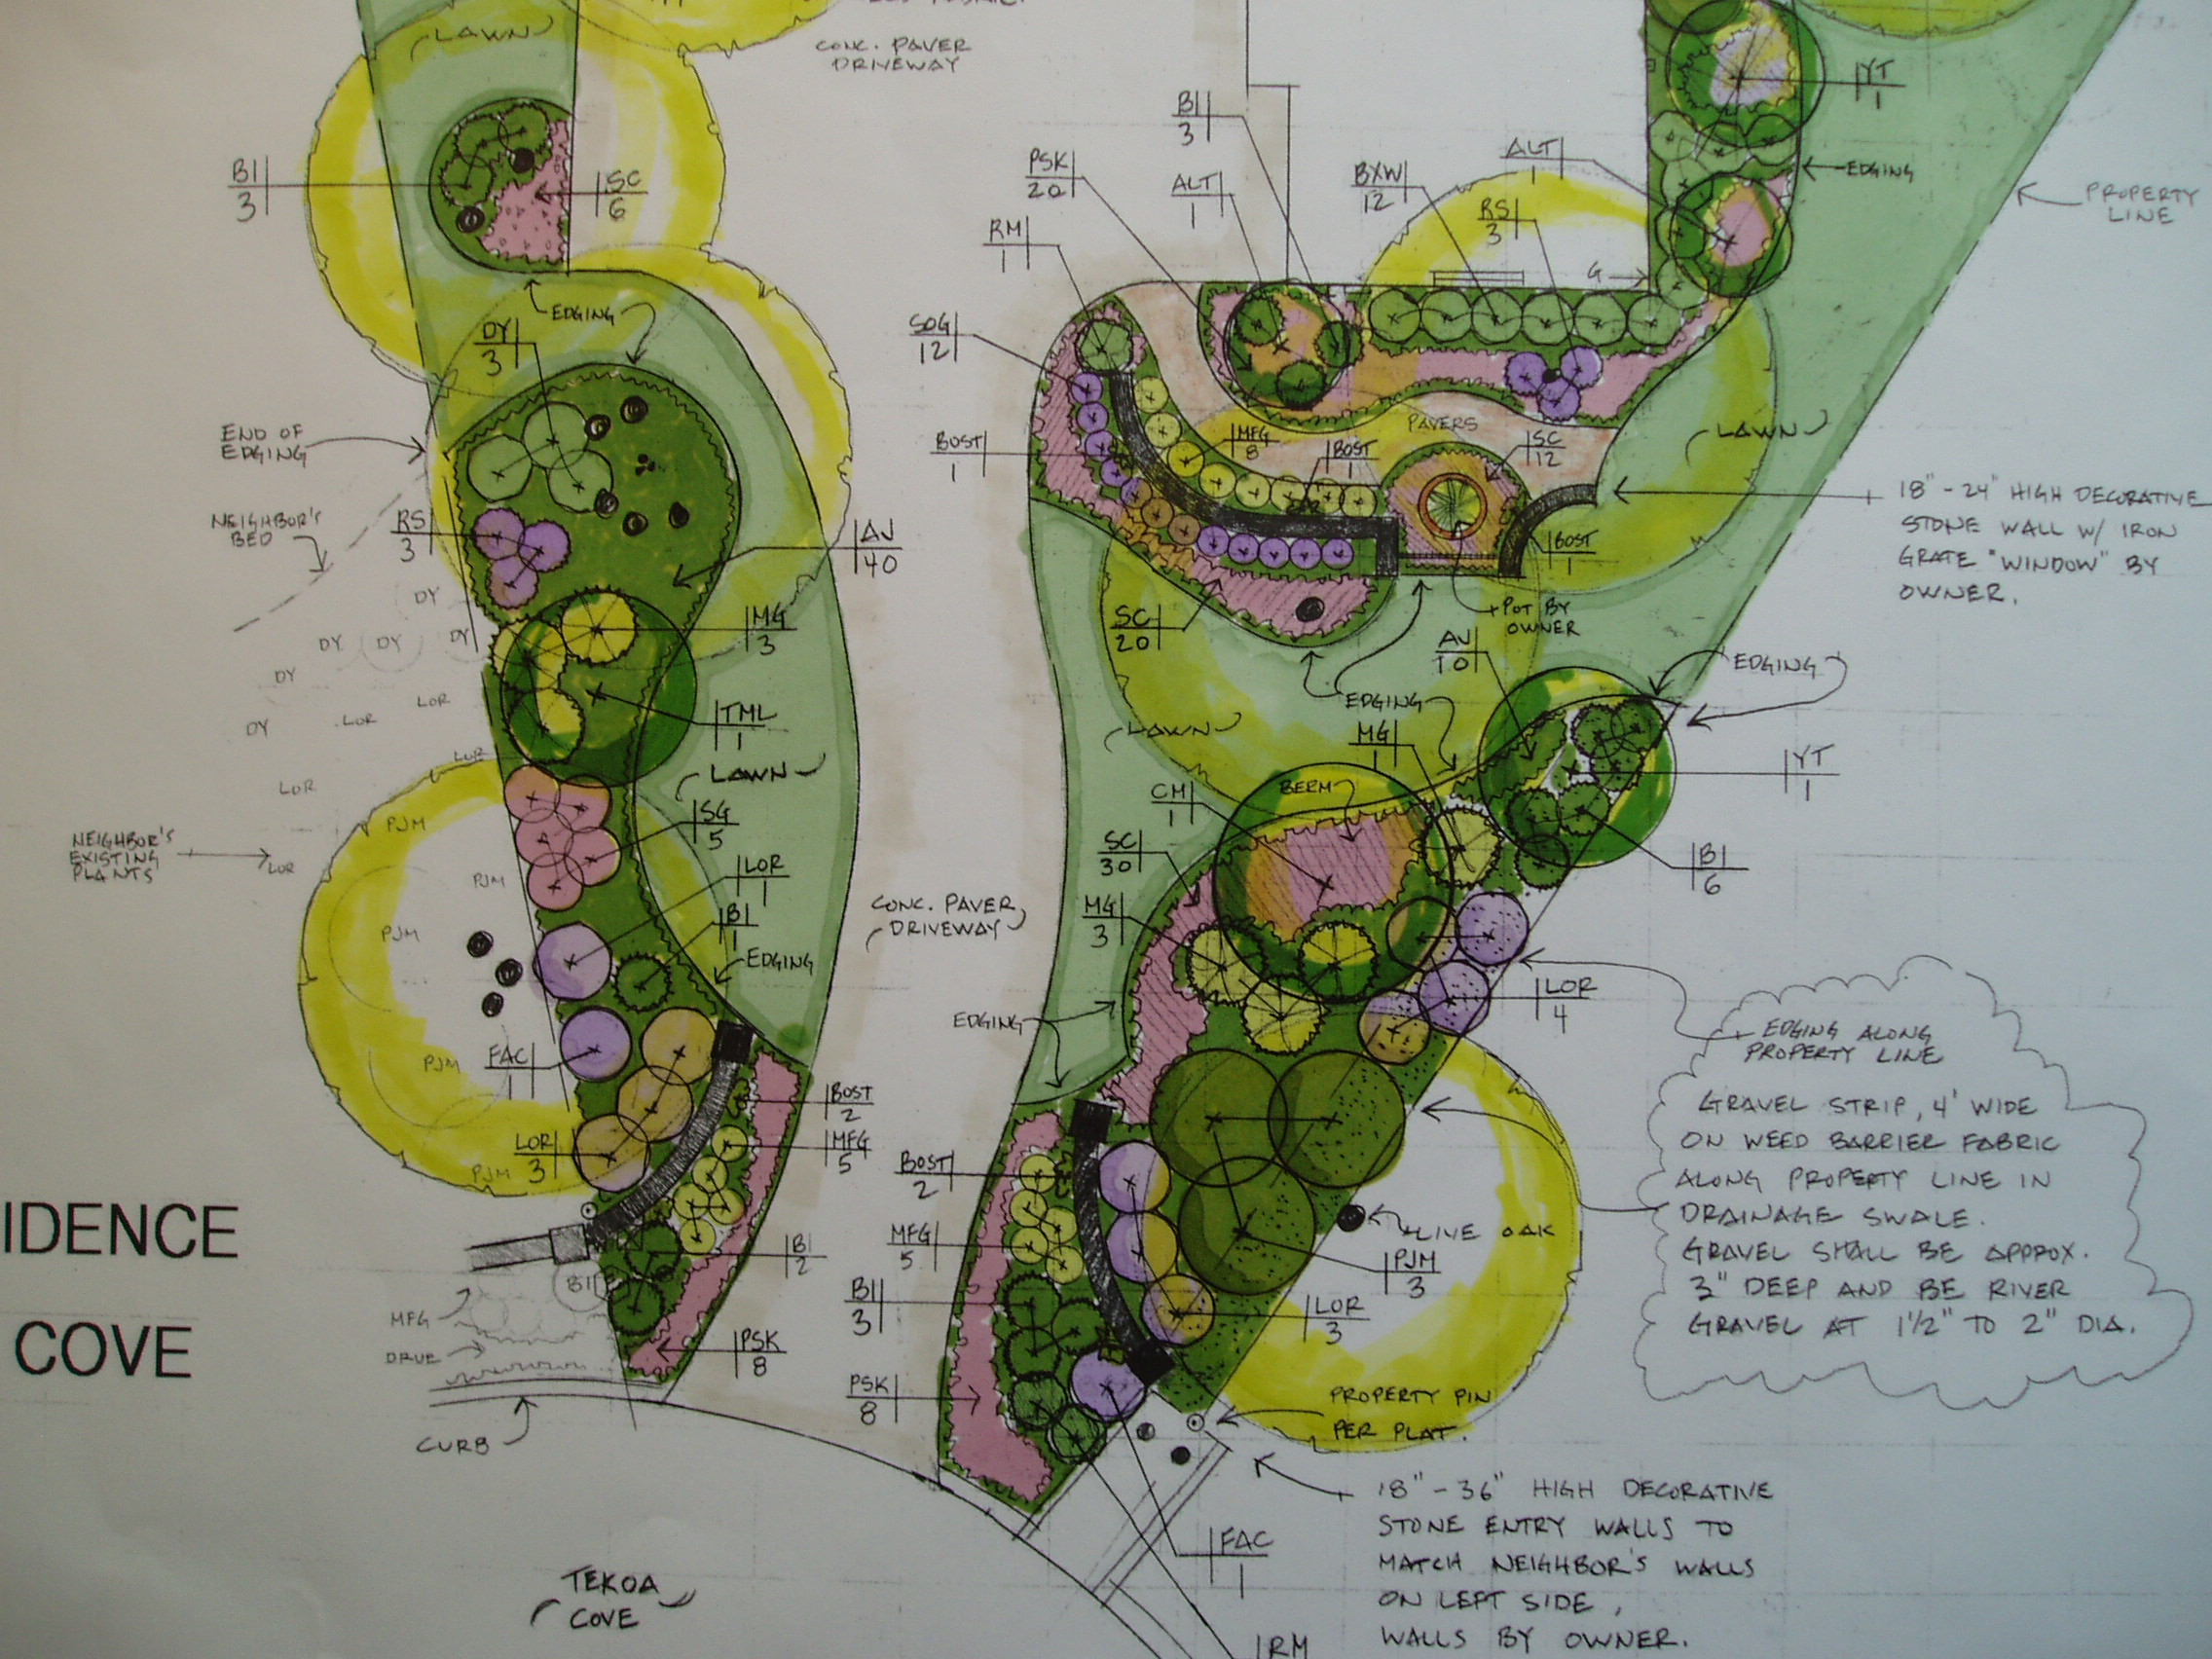 Landscape Architecture Design Plan 2272 x 1704